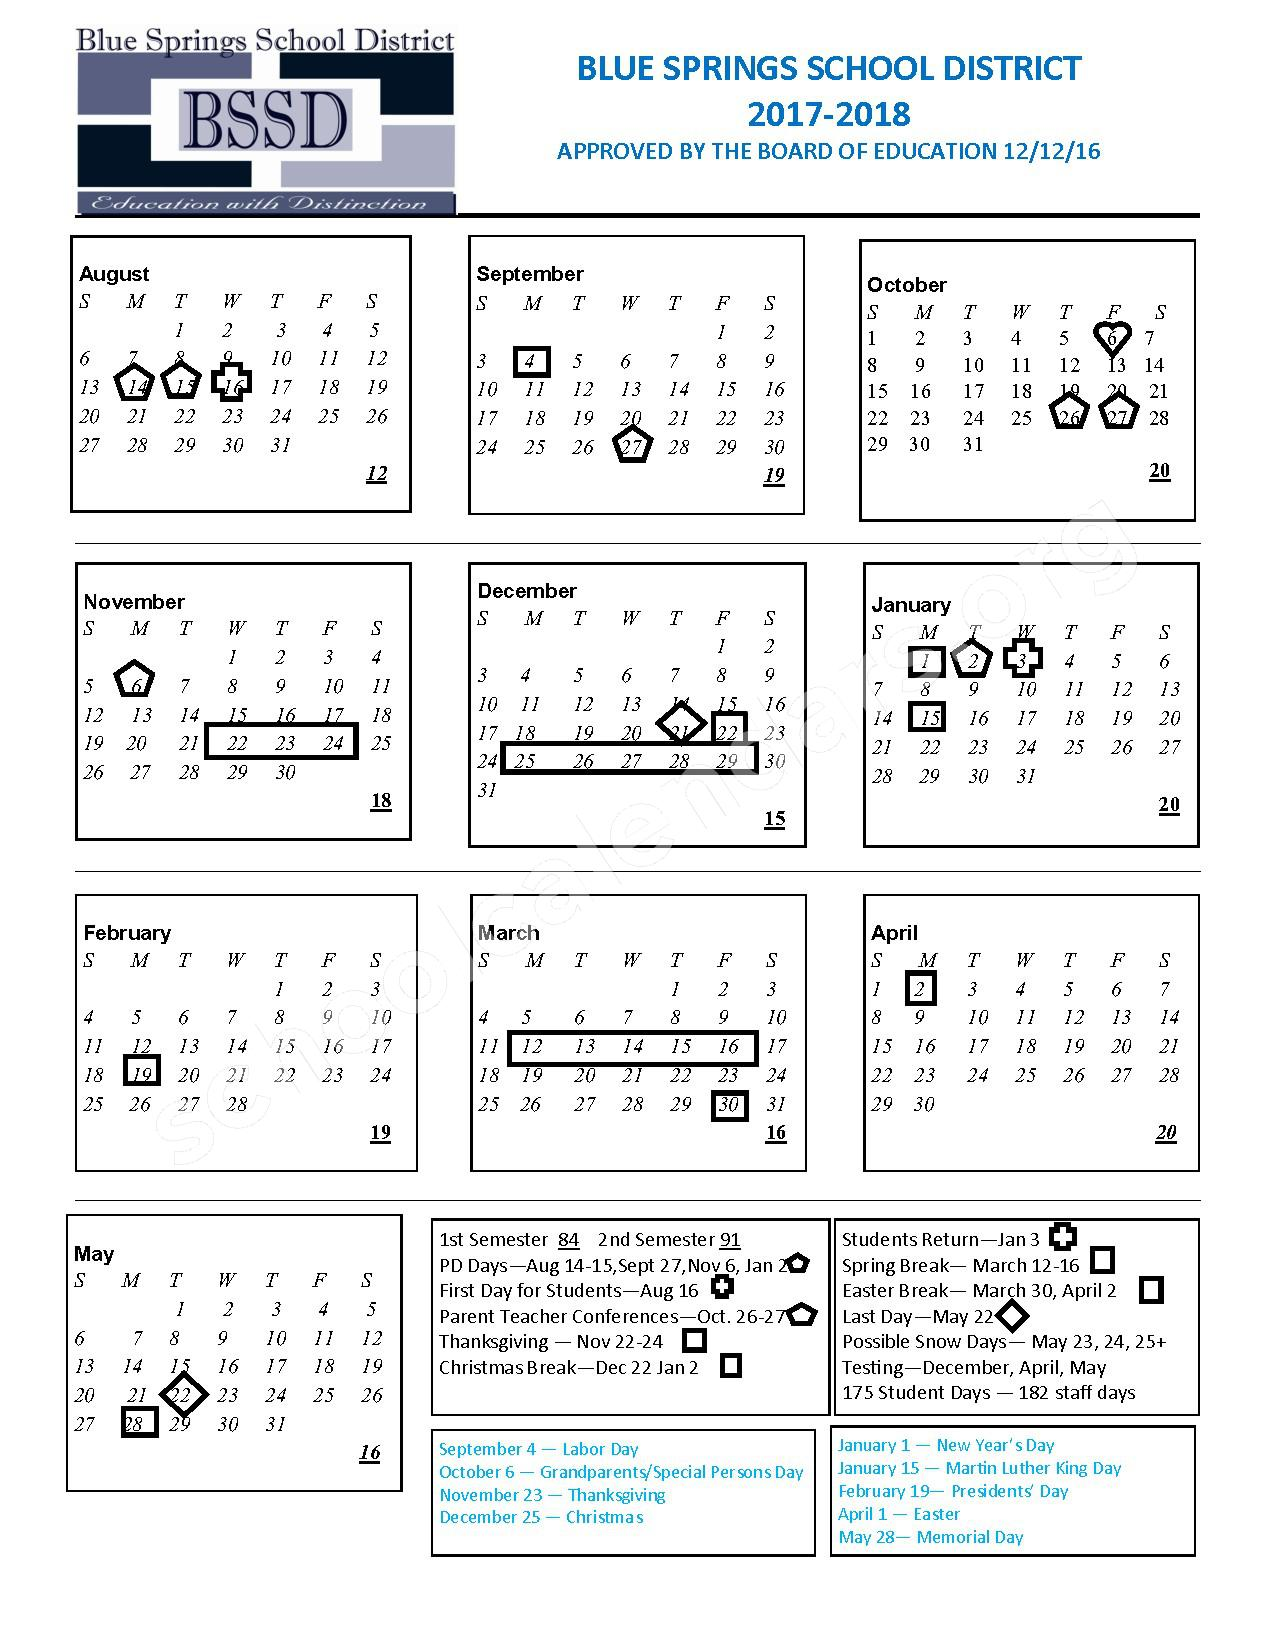 2017 - 2018 Board Approved Calendar – Blue Springs R-IV School District – page 1